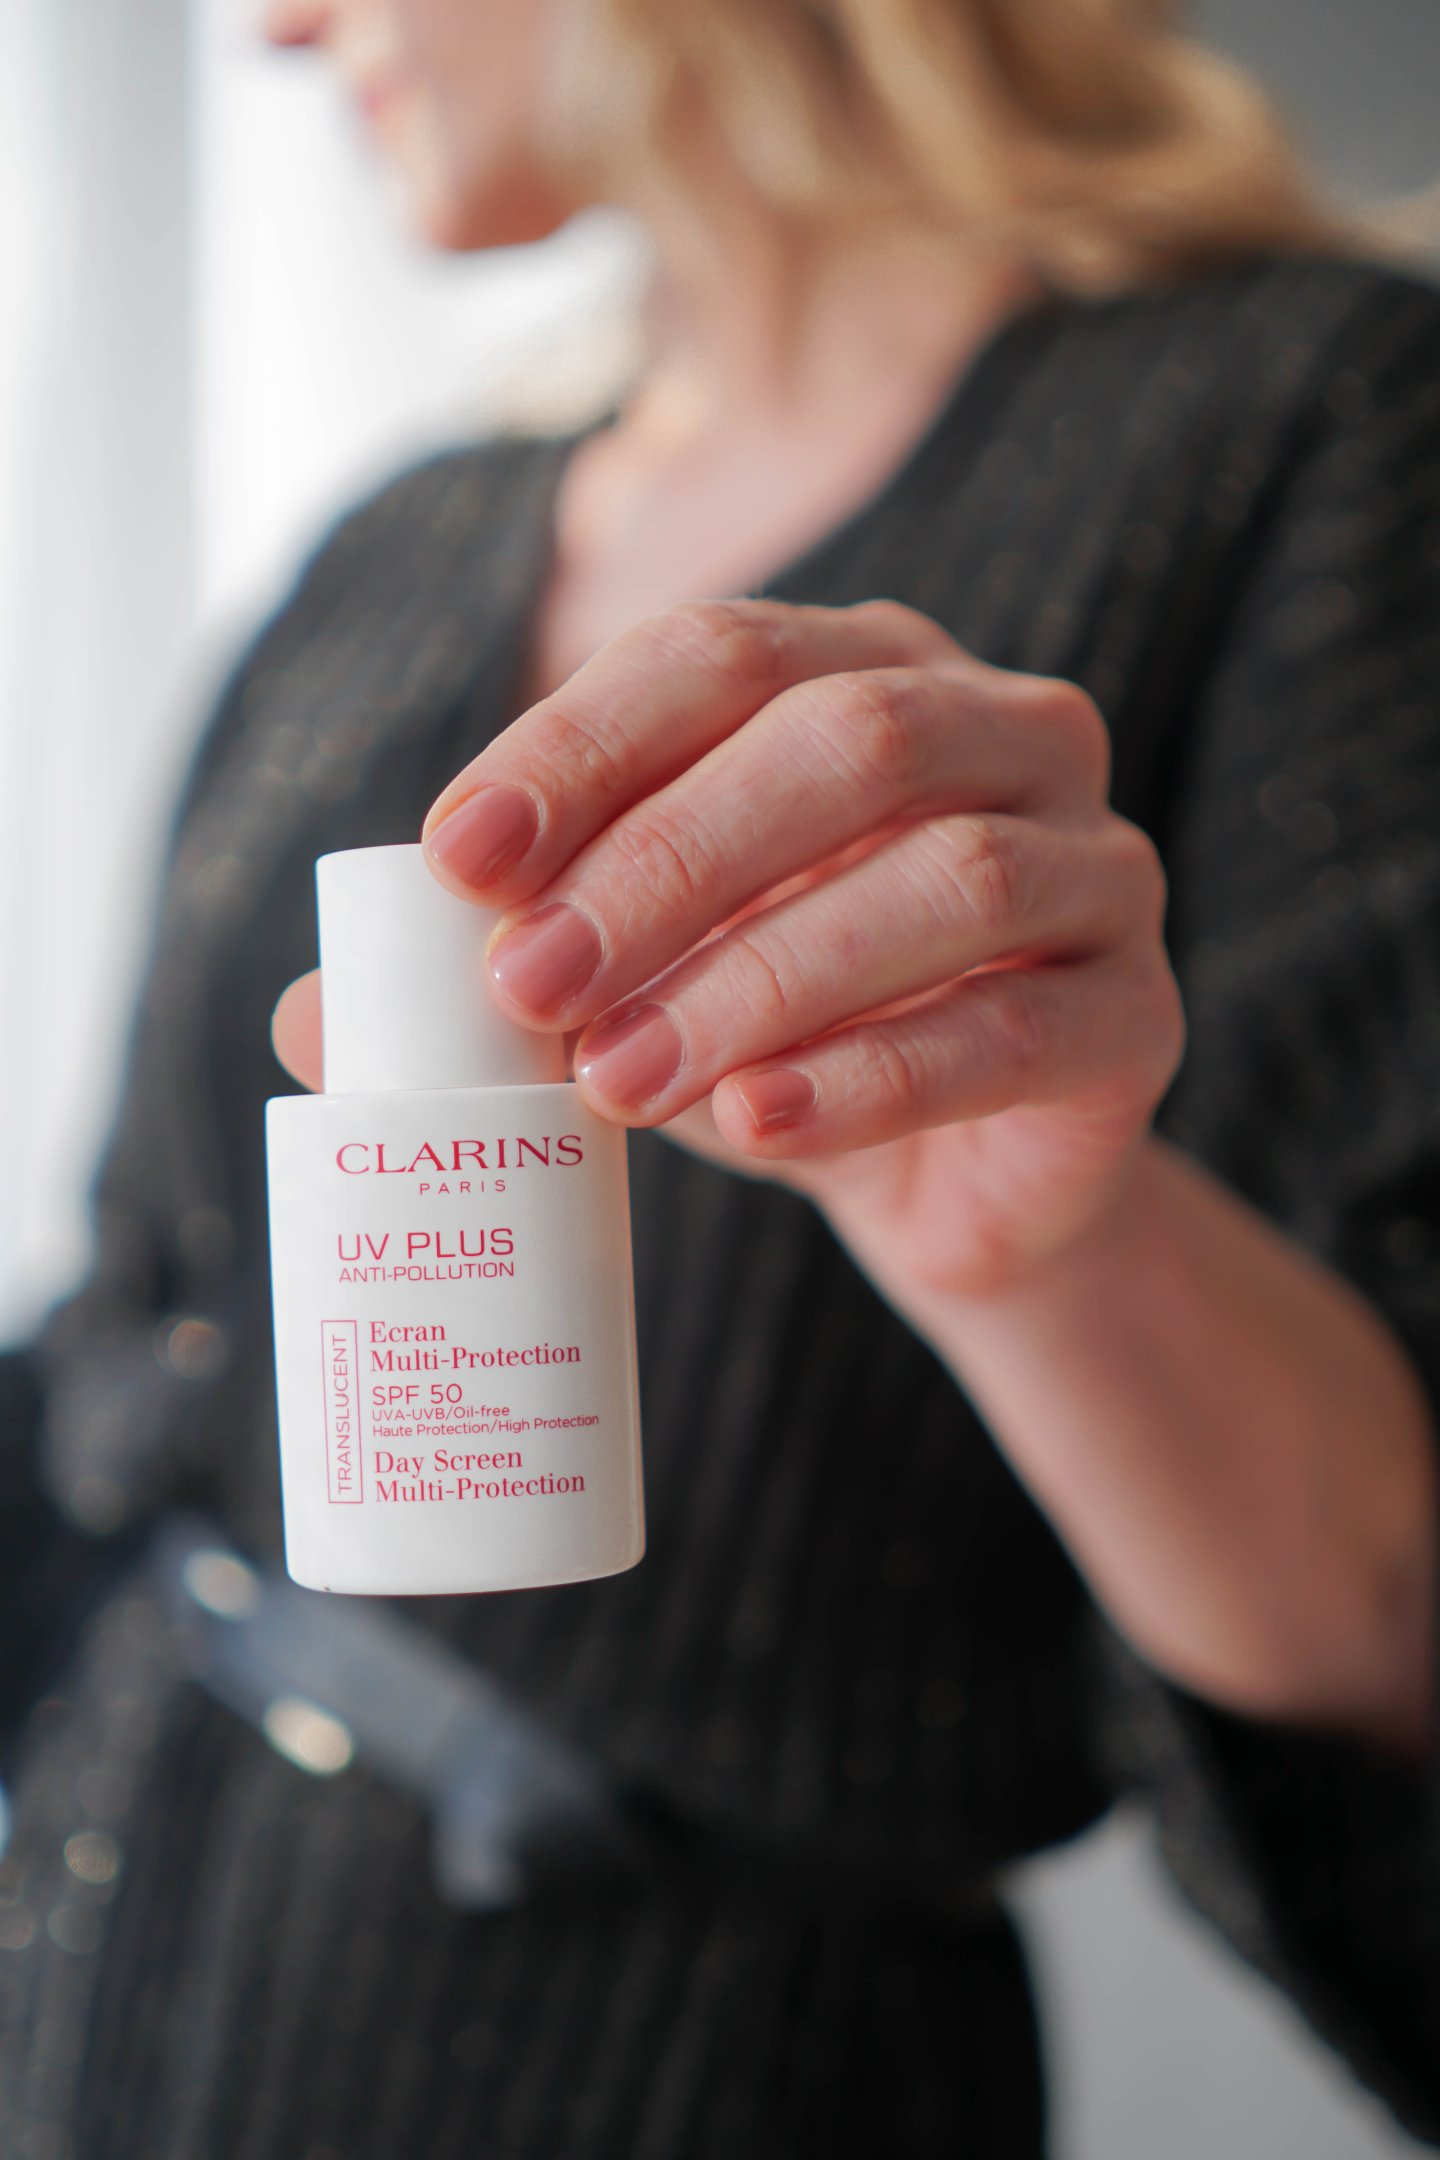 Clarins UV-Plus Anti Pollution-nowshine beauty